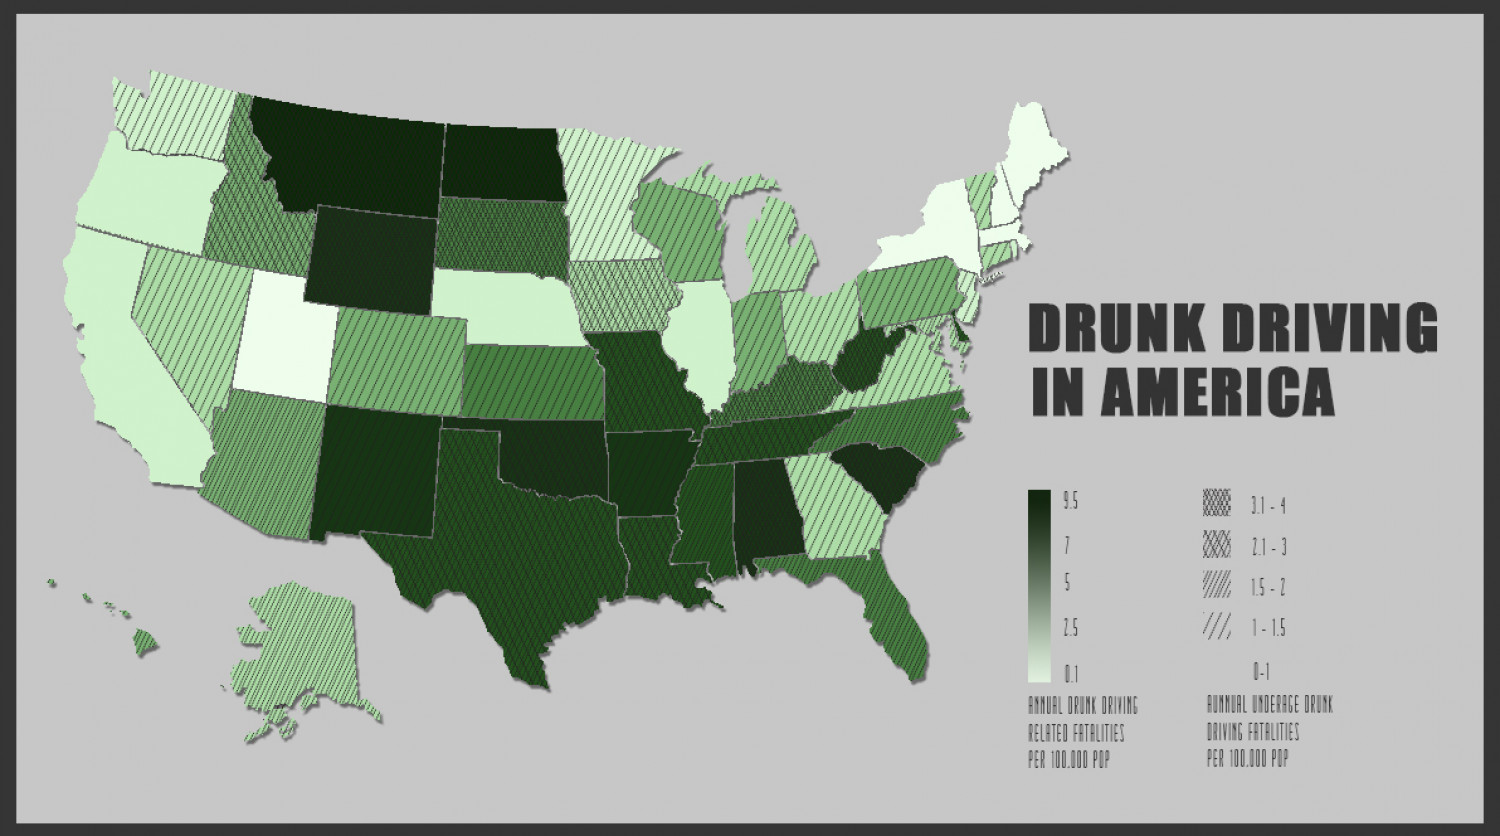 Drunk Driving in America Infographic